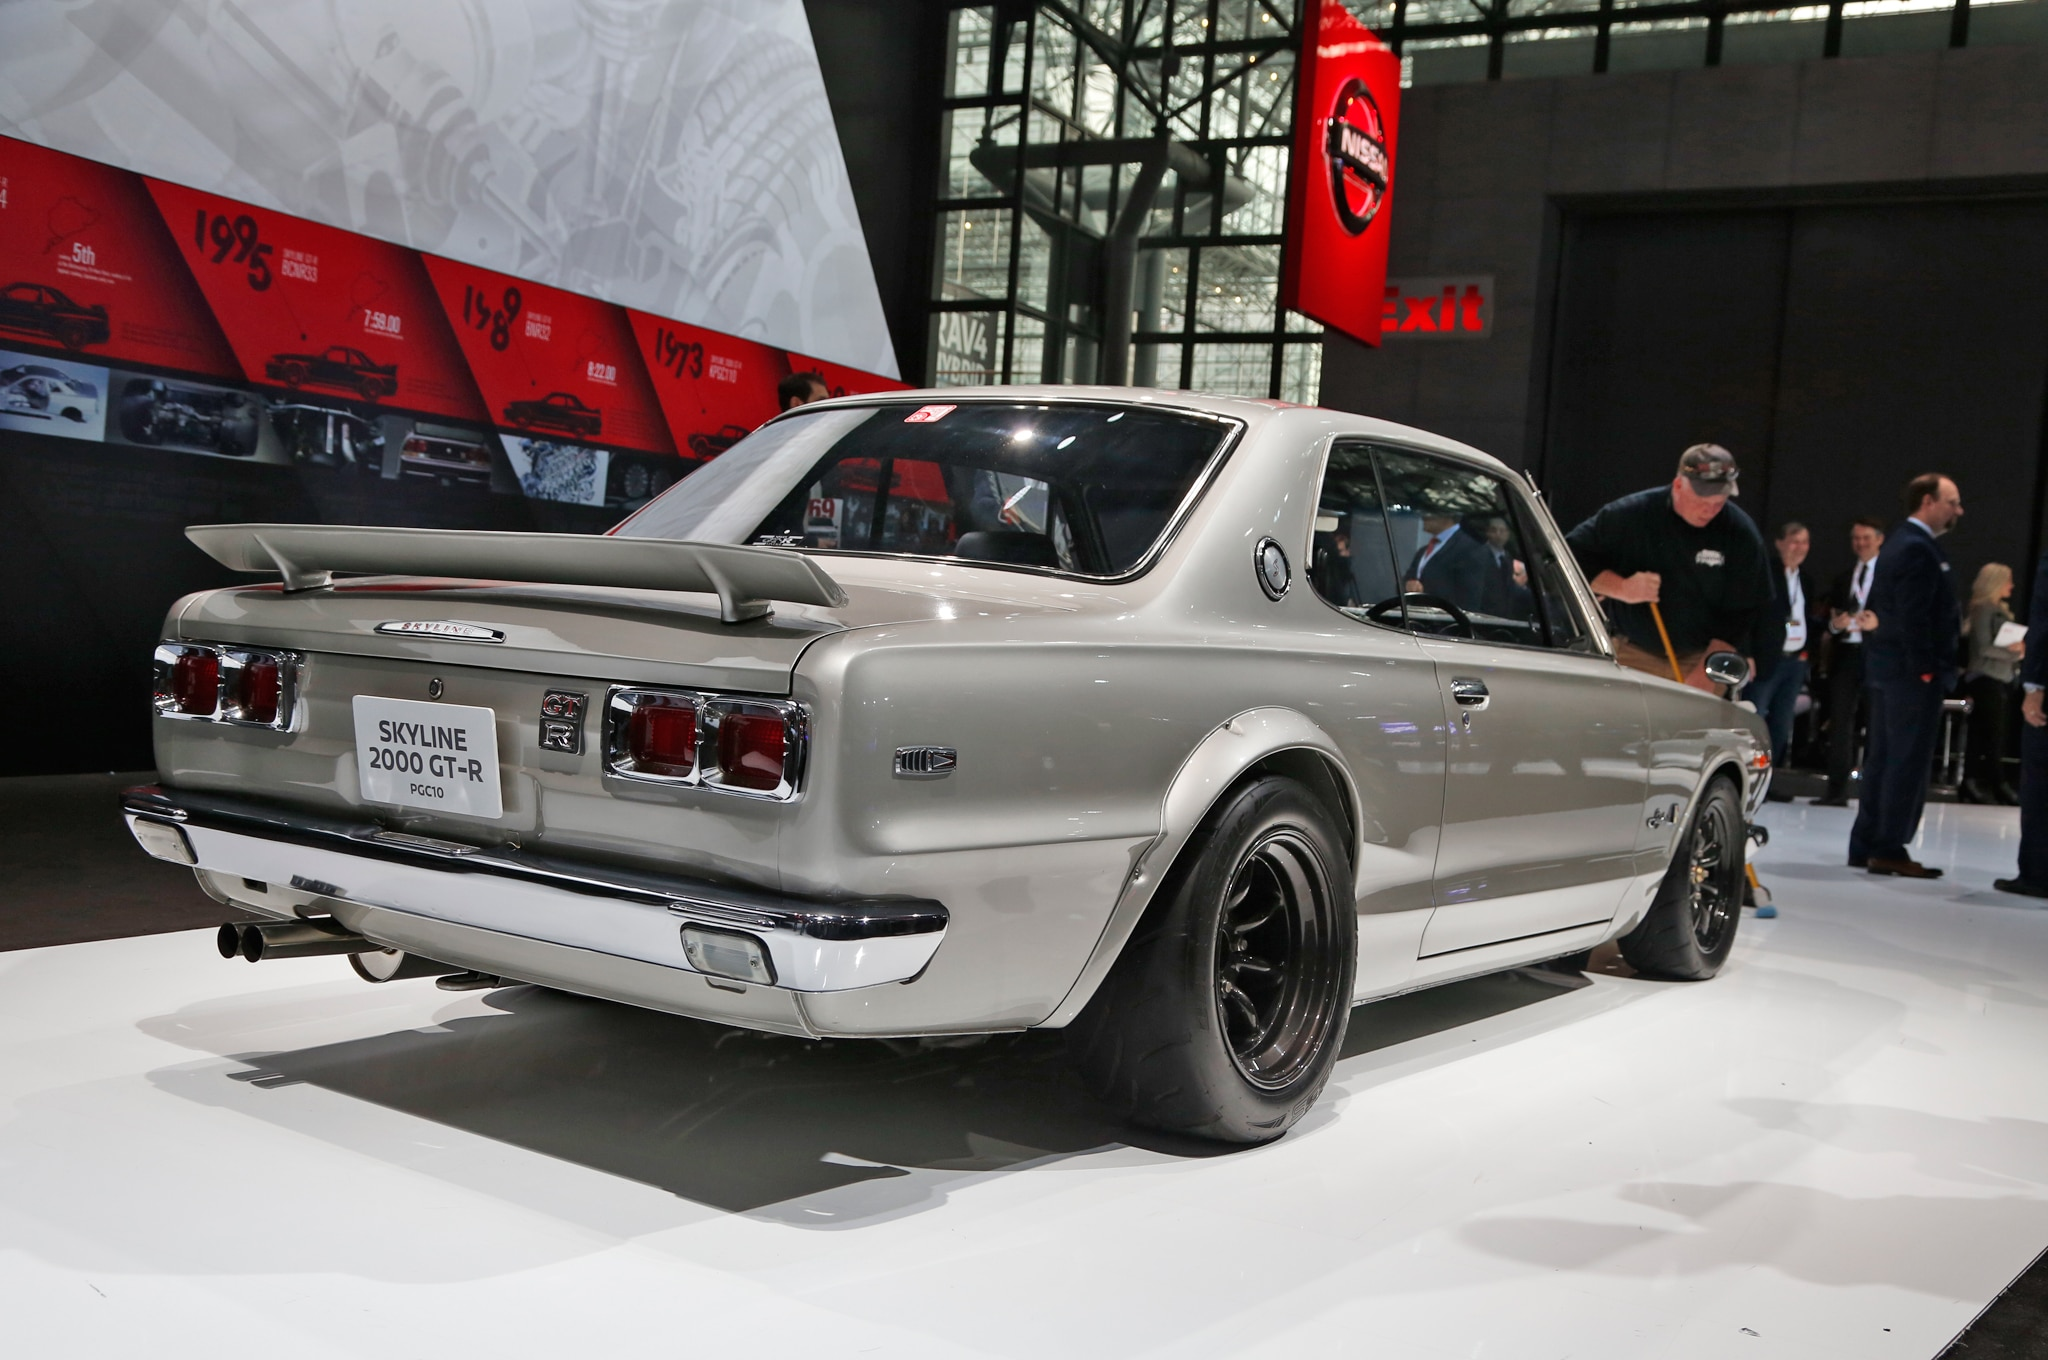 Nissan Gt R Genealogy Tracing The Roots Of The Supercar